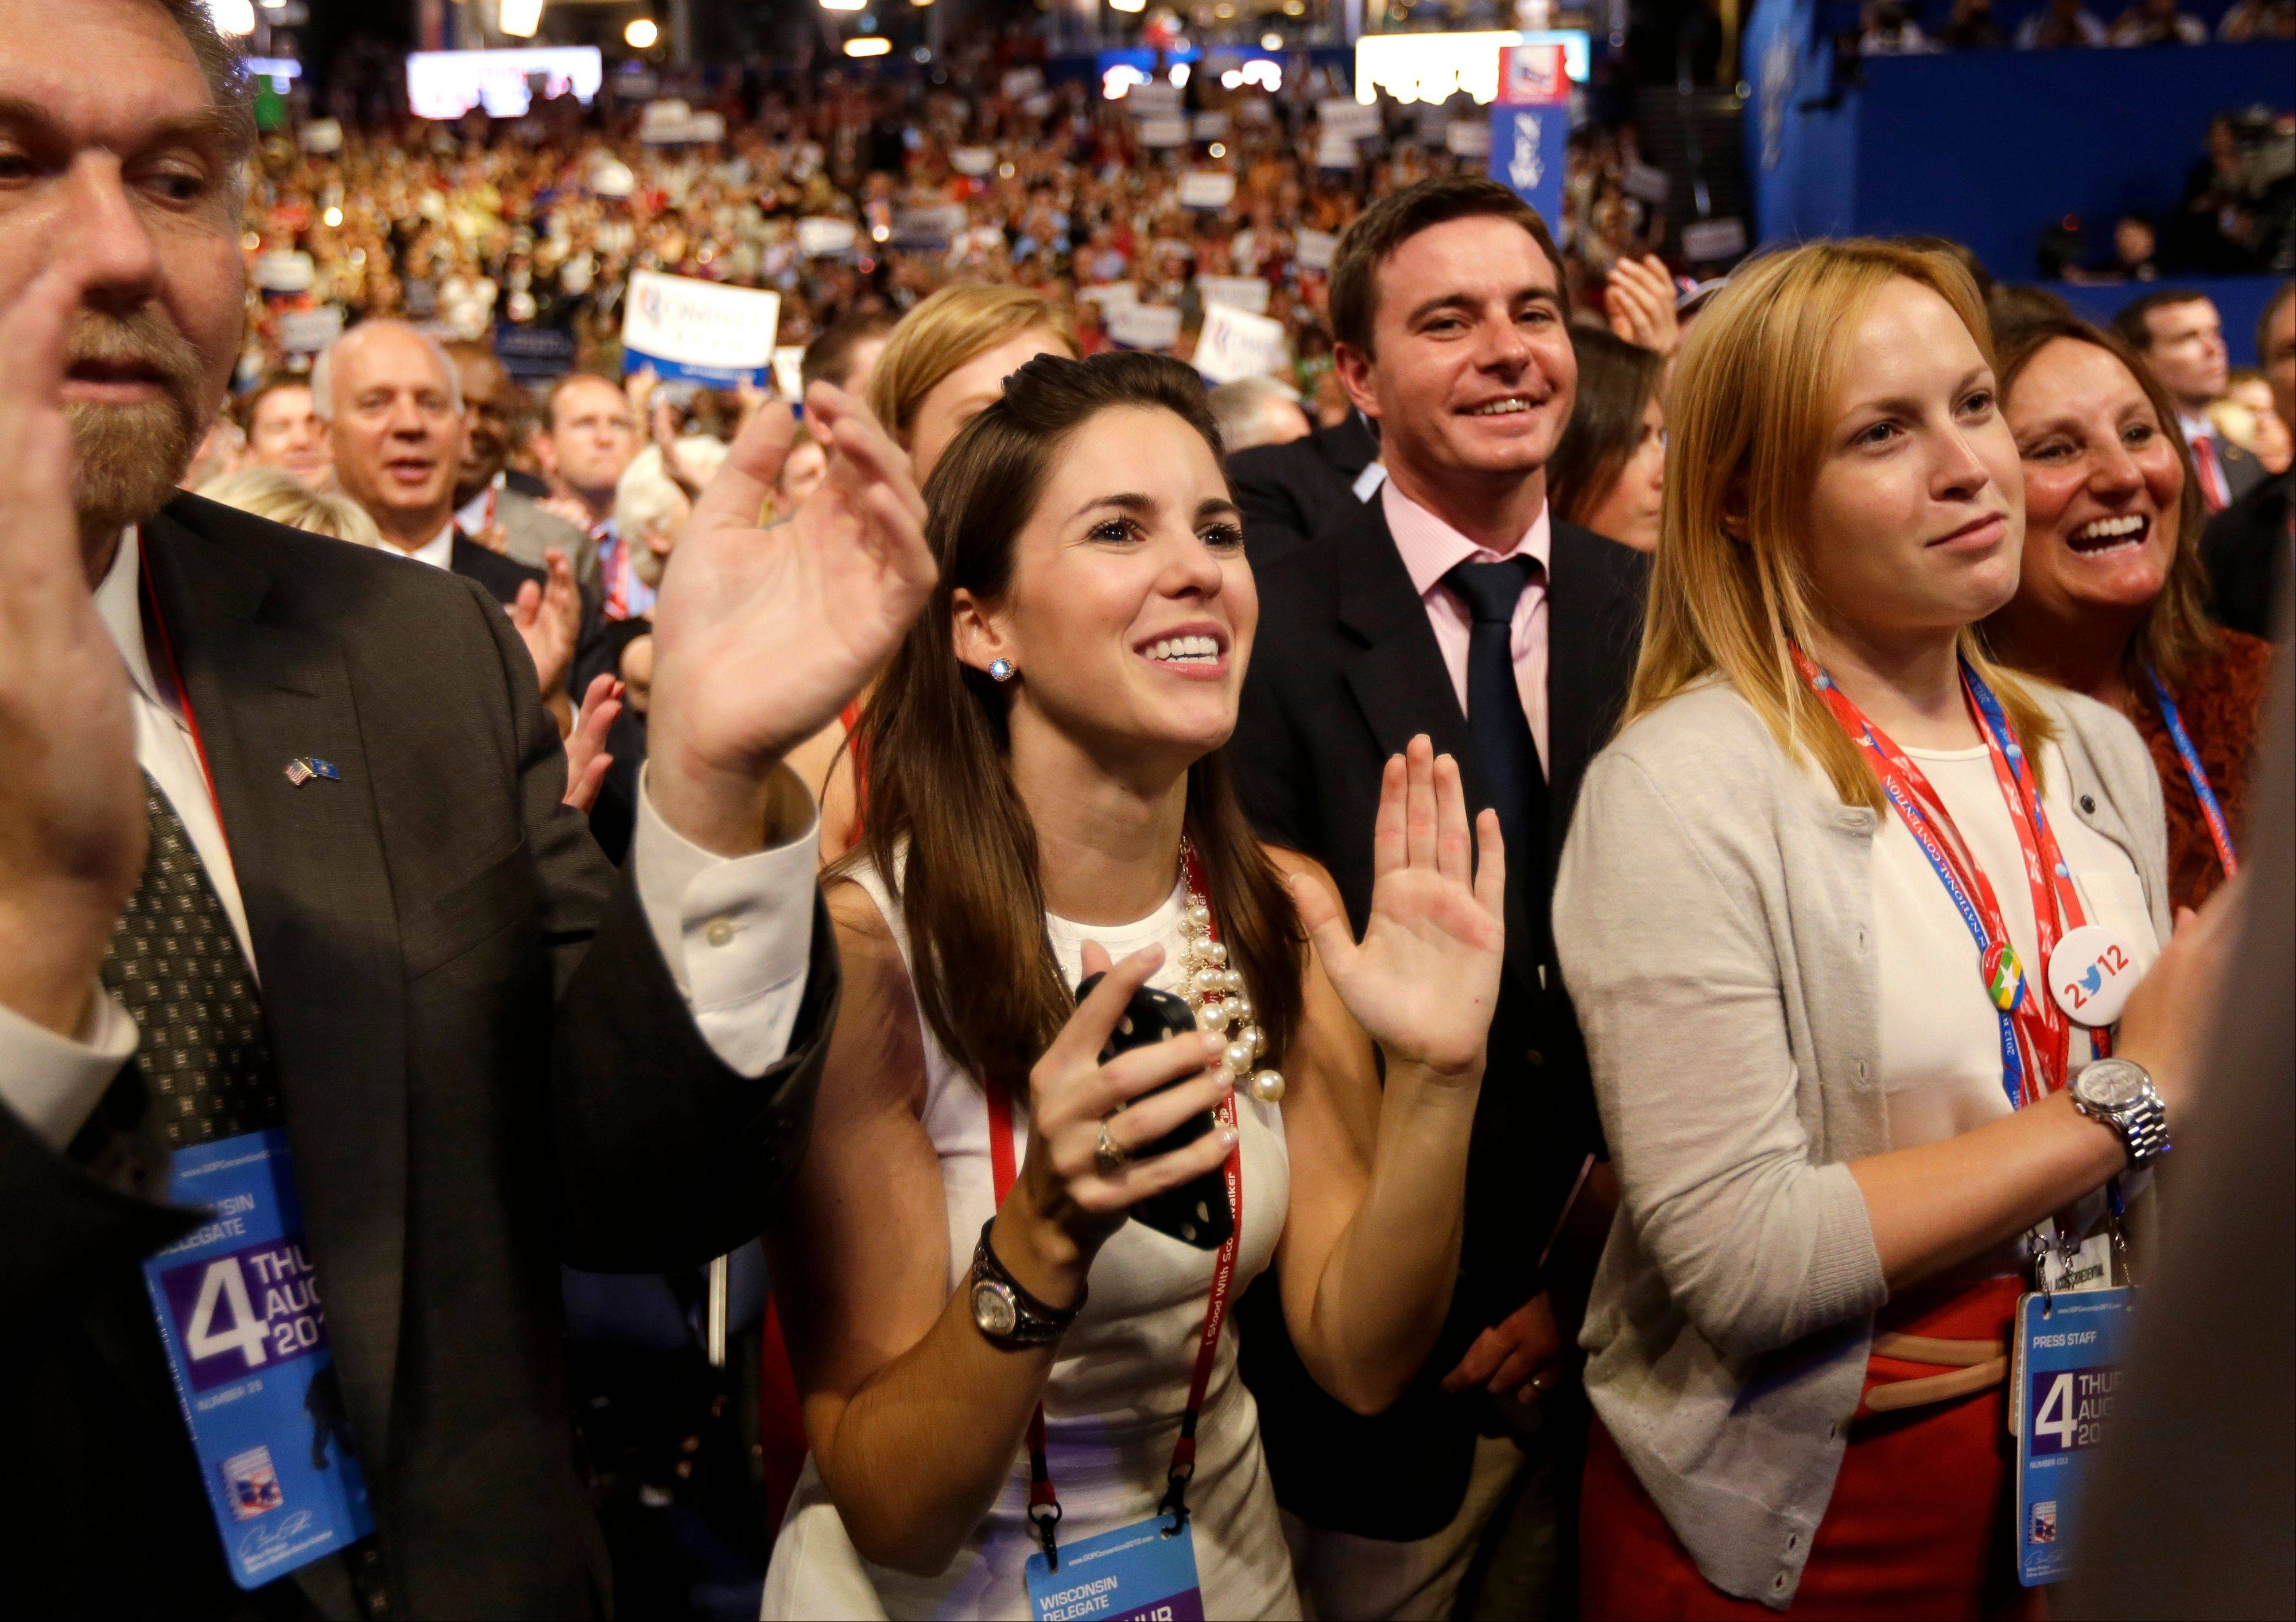 Delegates react as Republican presidential nominee Mitt Romney addresses delegates Thursday before speaking at the Republican National Convention in Tampa, Fla.